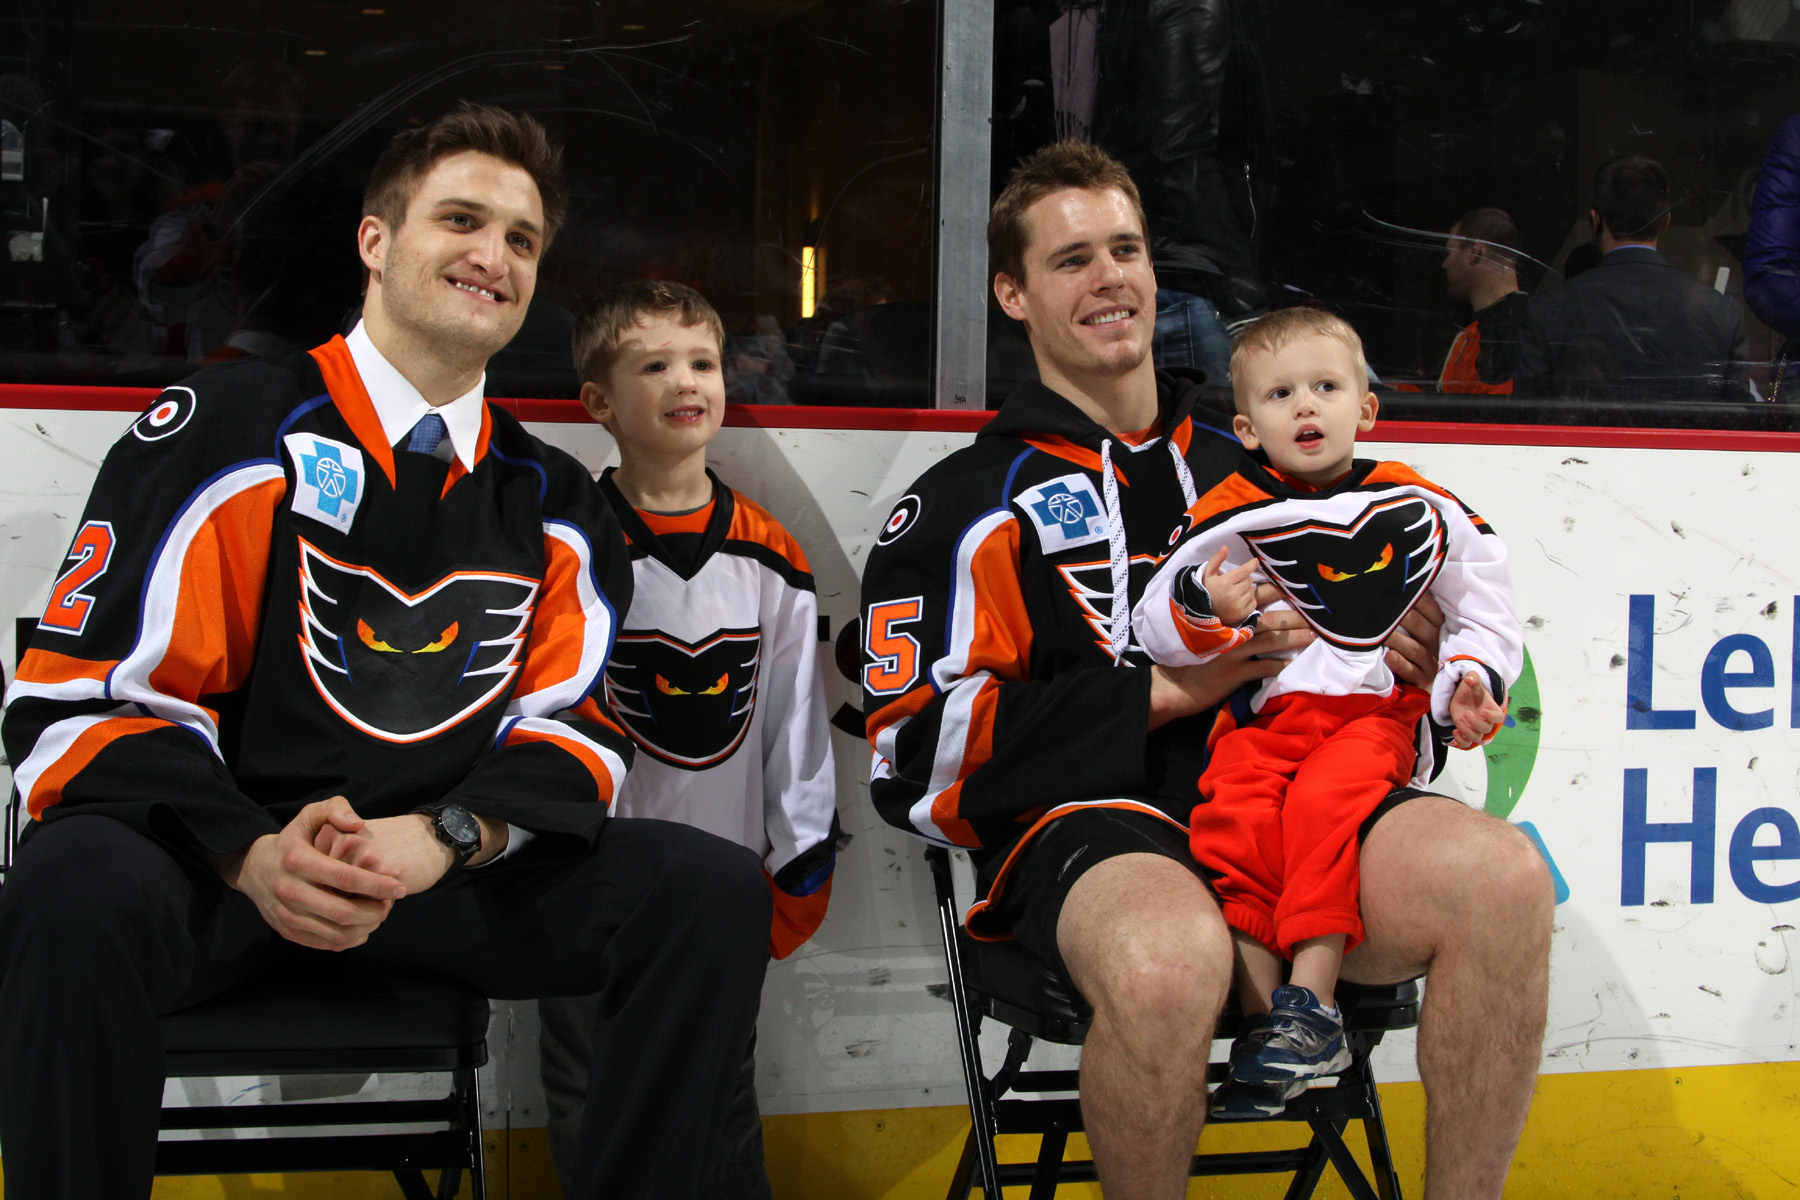 Post-Game Photos with Phantoms Players - Saturday, February 13 @ PPL Center